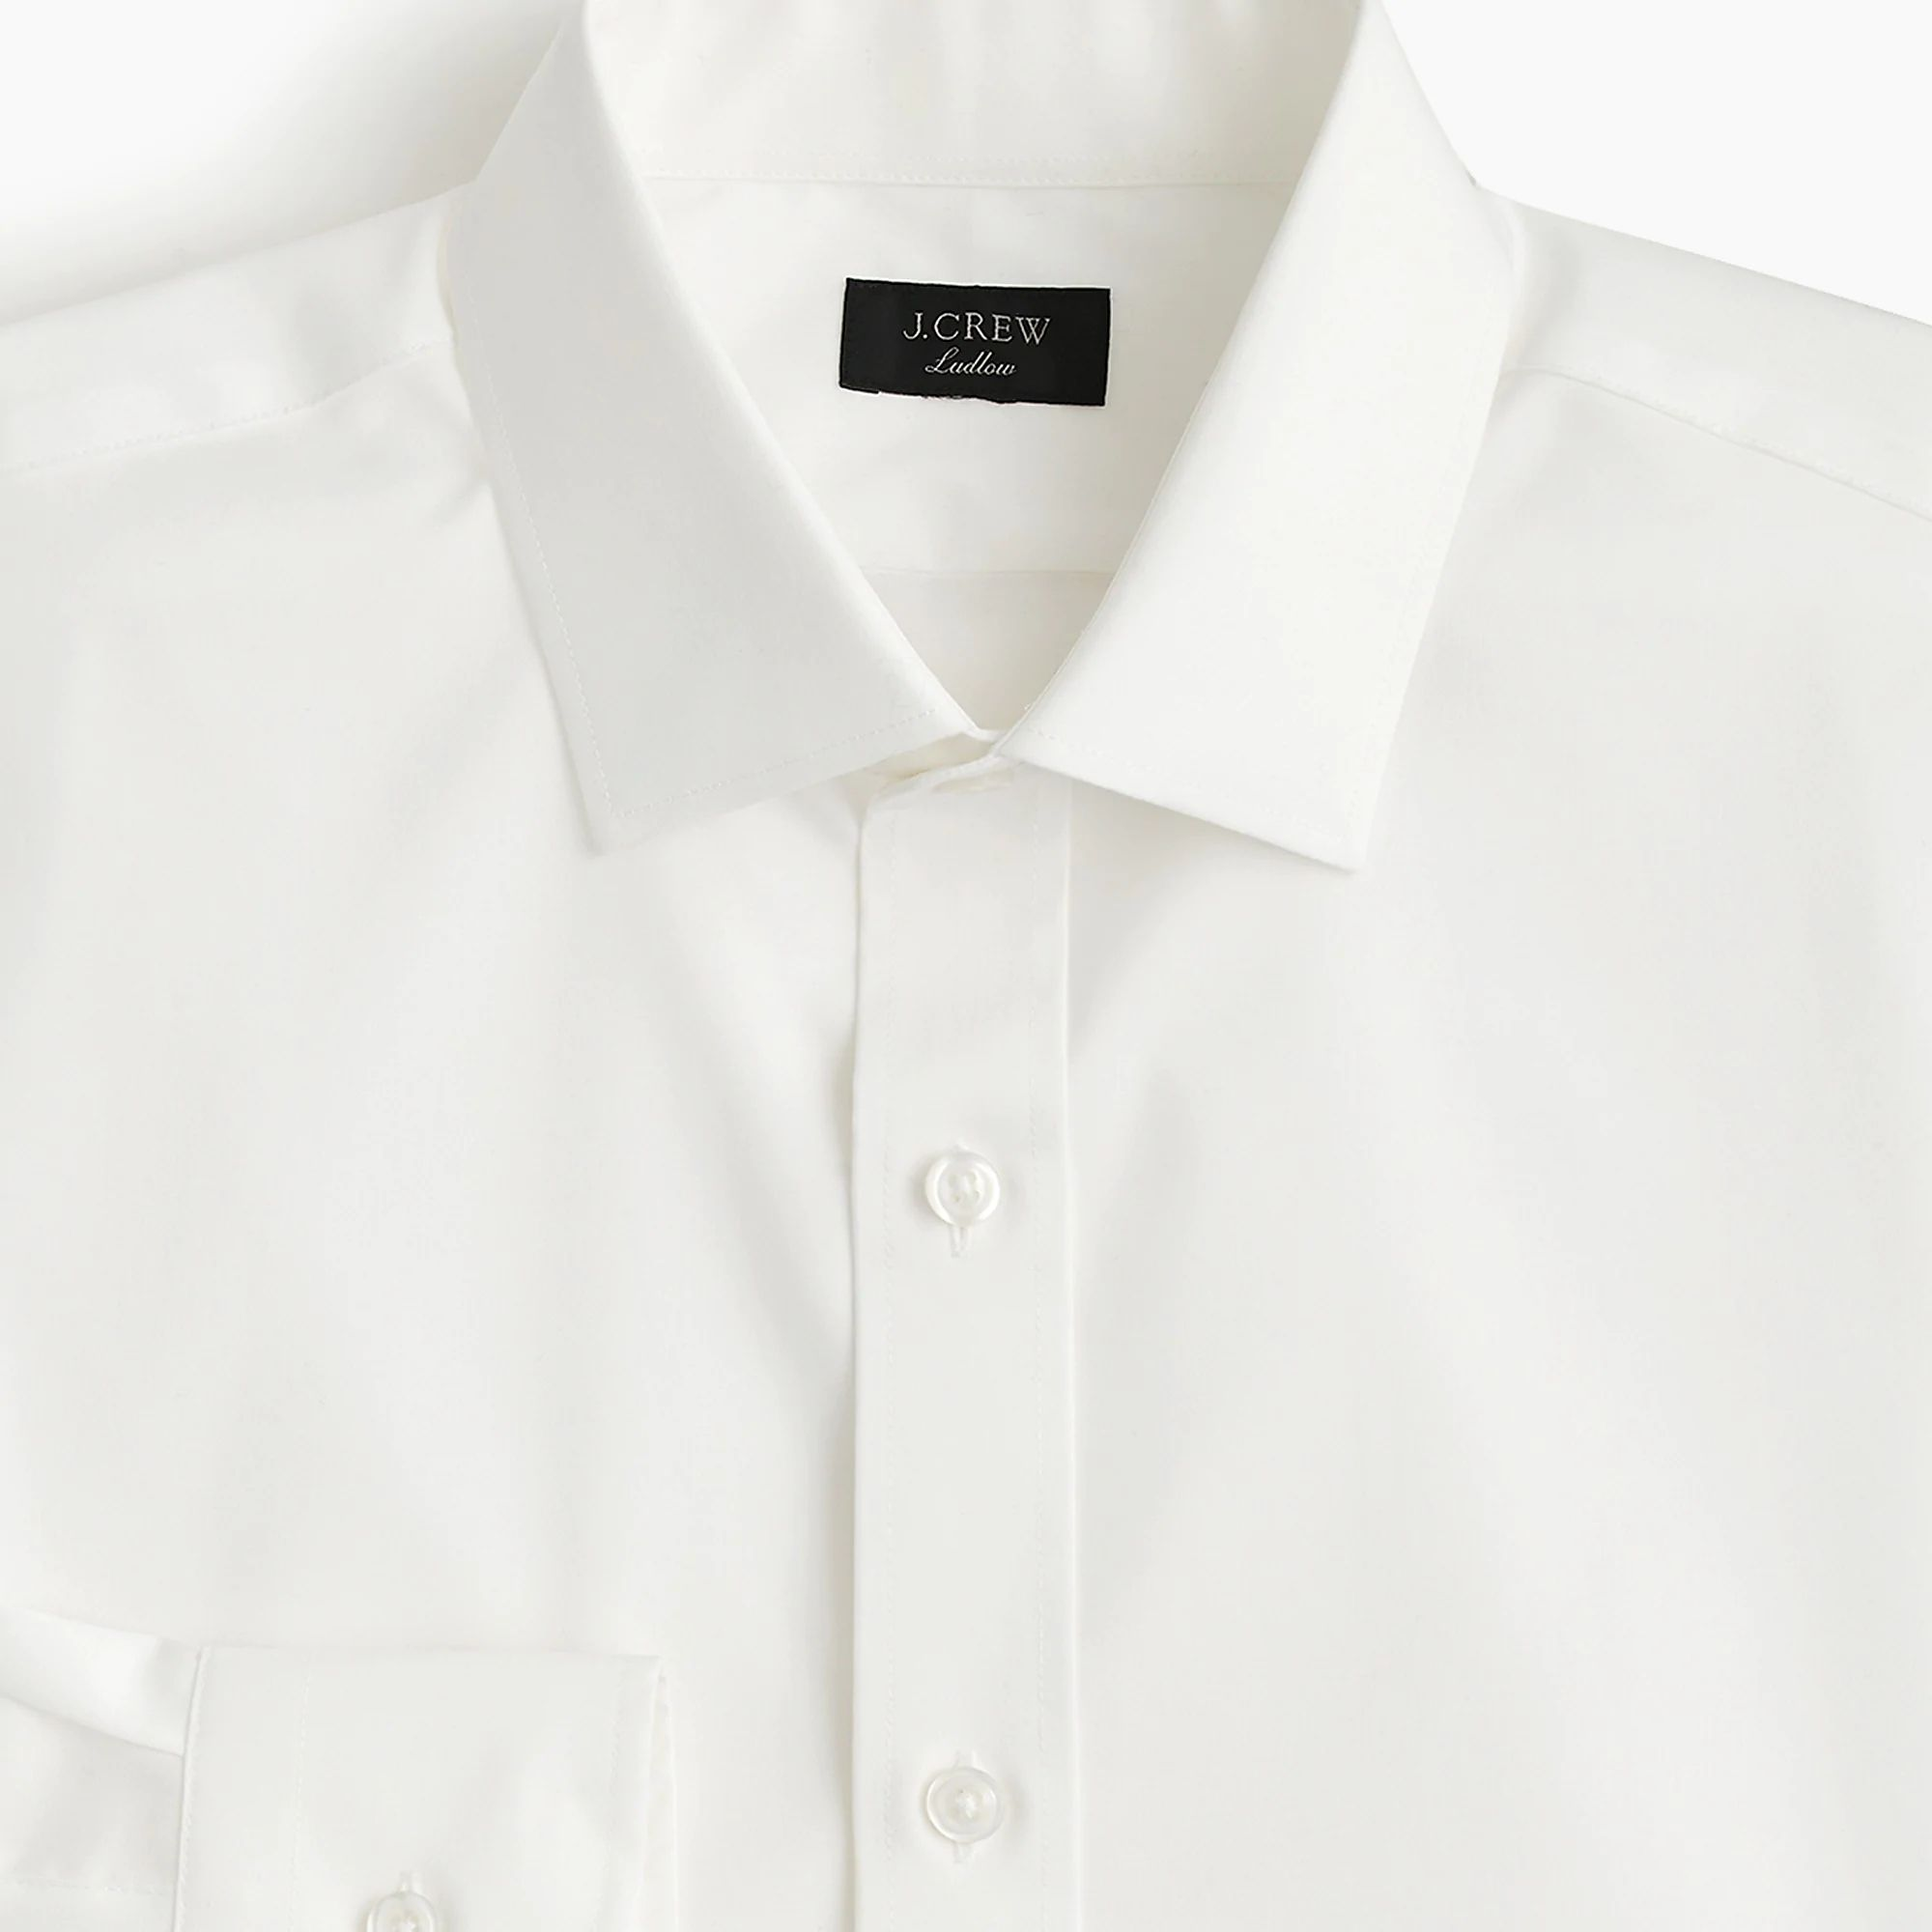 The 7 Best White Dress Shirts to Buy